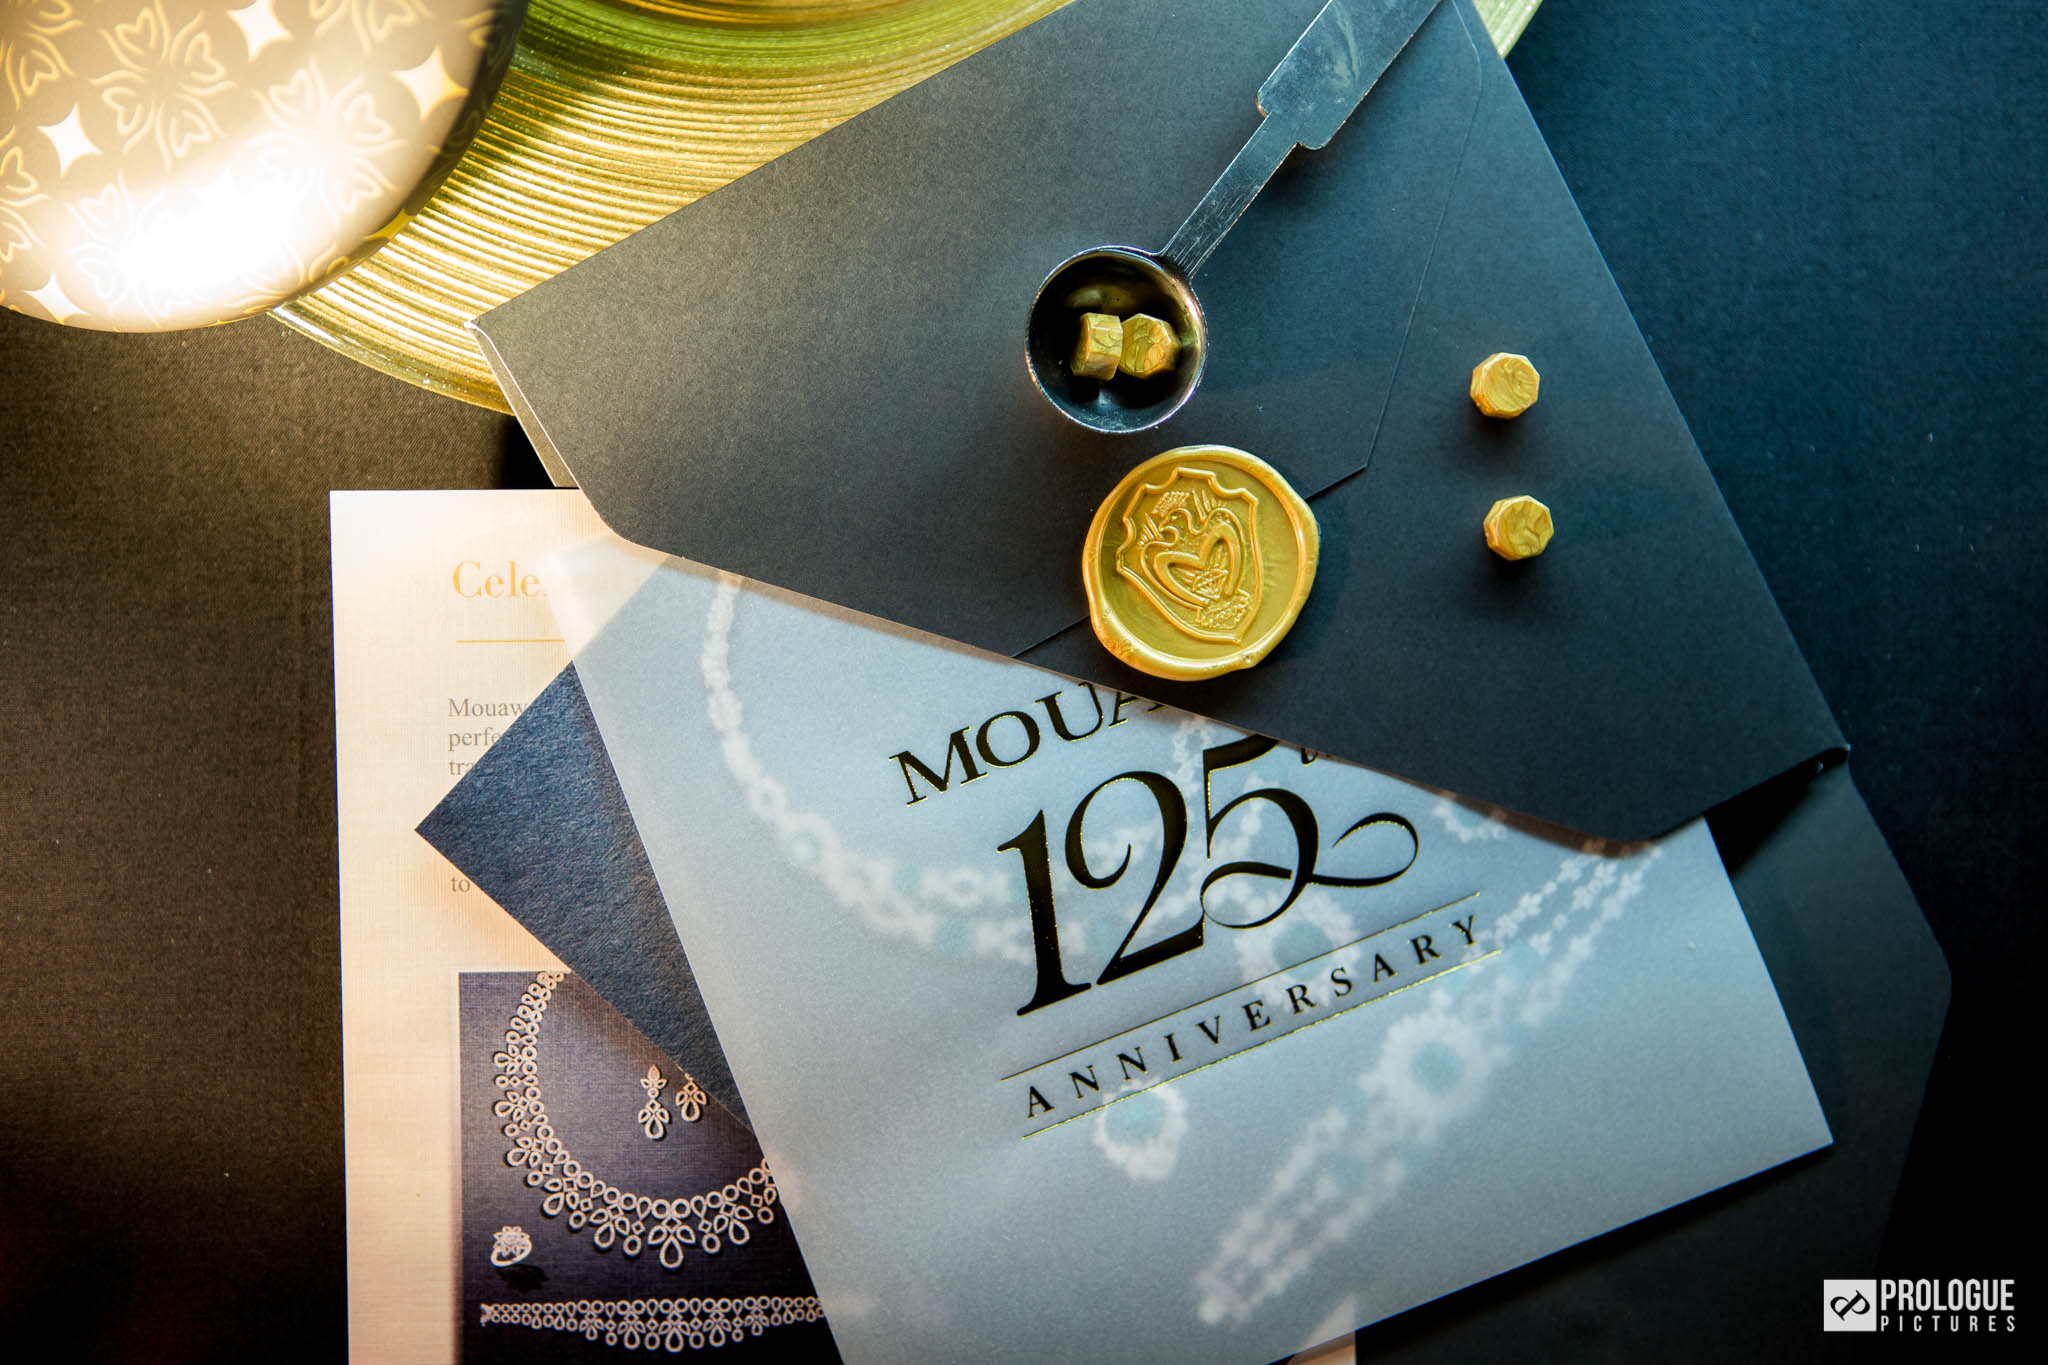 mouawad-125th-anniversary-event-photography-singapore-prologue-pictures-01